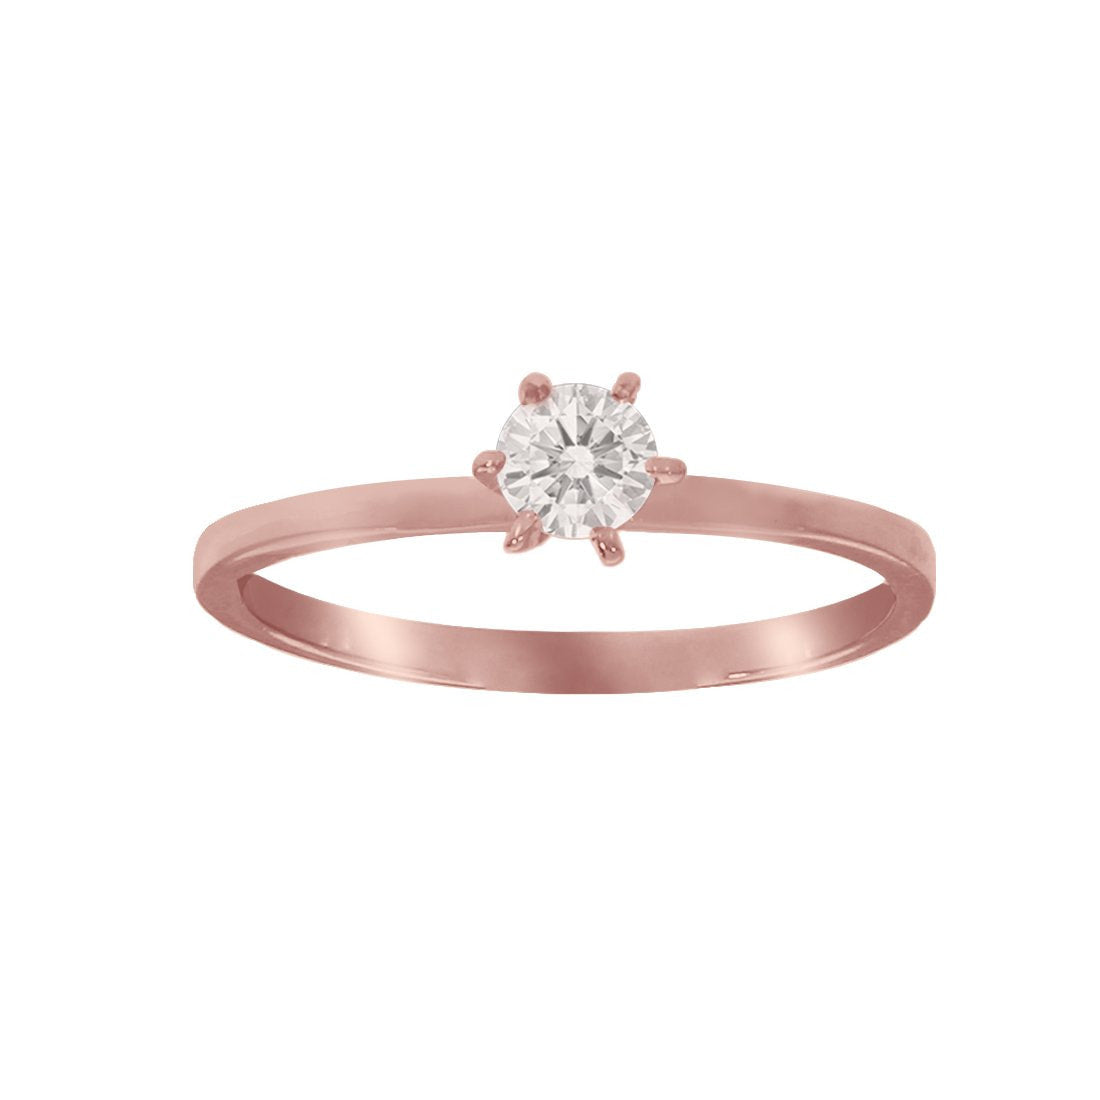 Anillo Oro Rosa 10k, con Zirconia Central de 4 mm